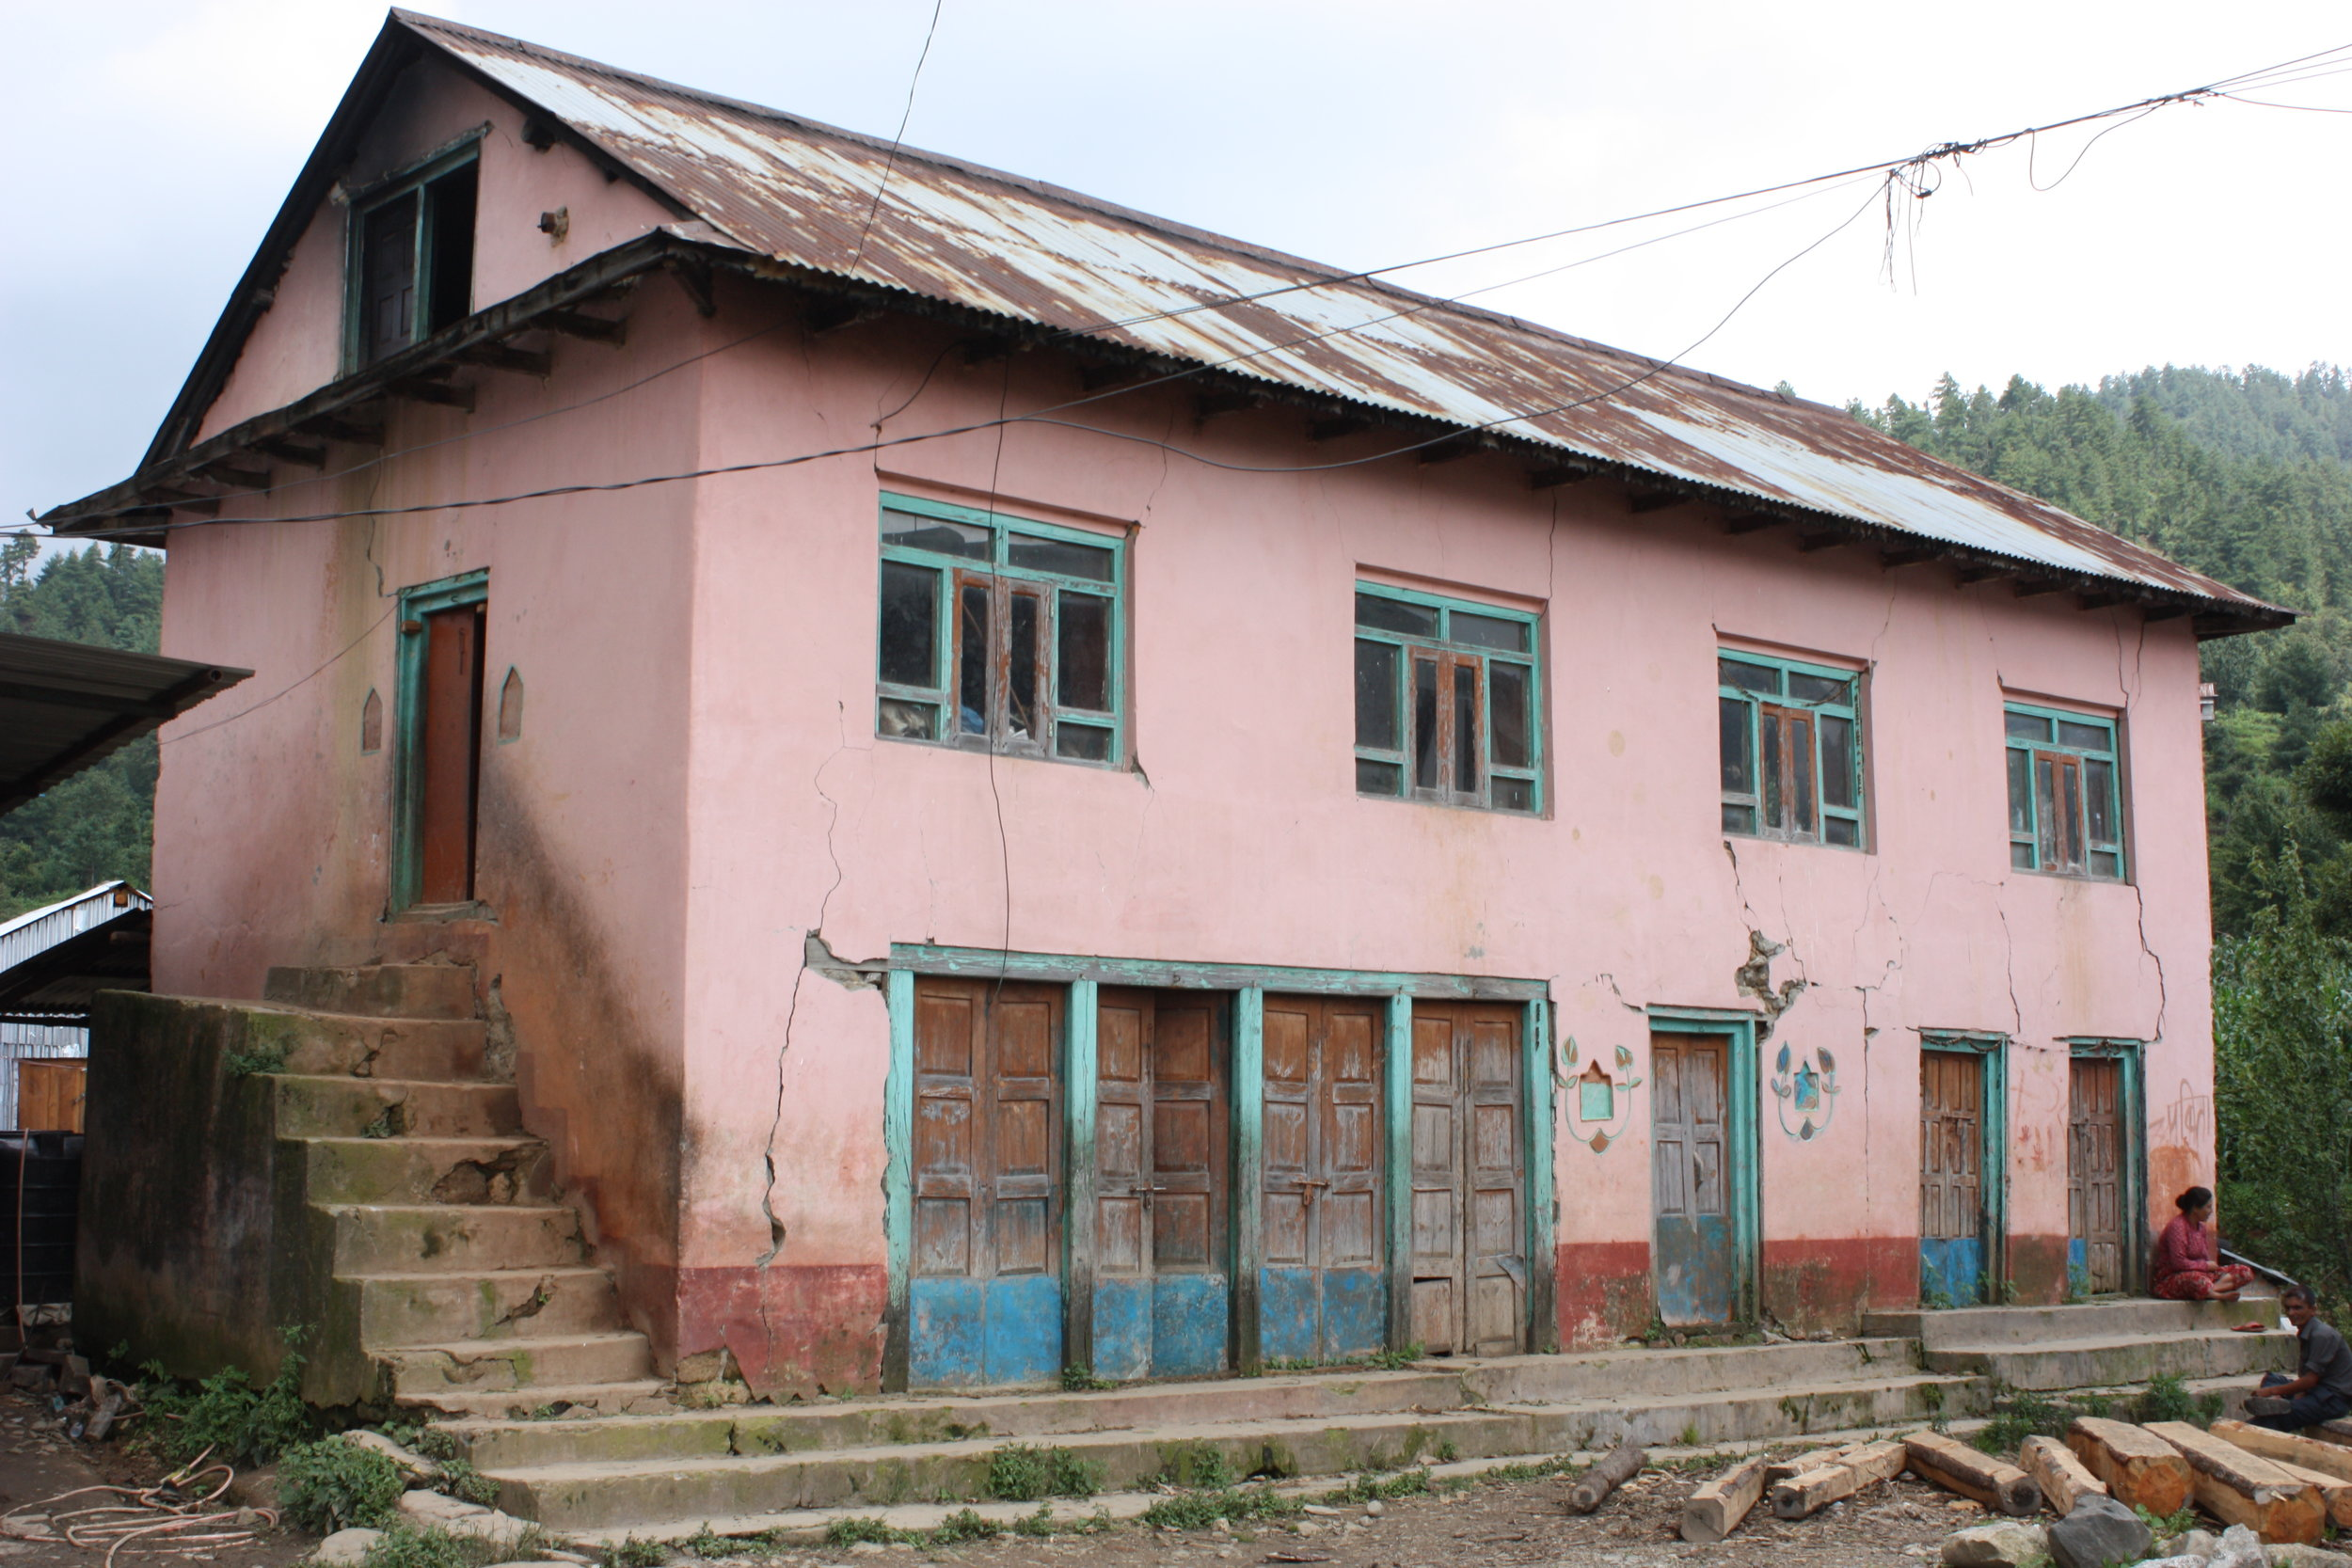 Figure 2: A house in the Makwanpur region. This one has access to electricity, is finished with plaster, and is bigger than average. (Photograph by Lise van Overbeeke)